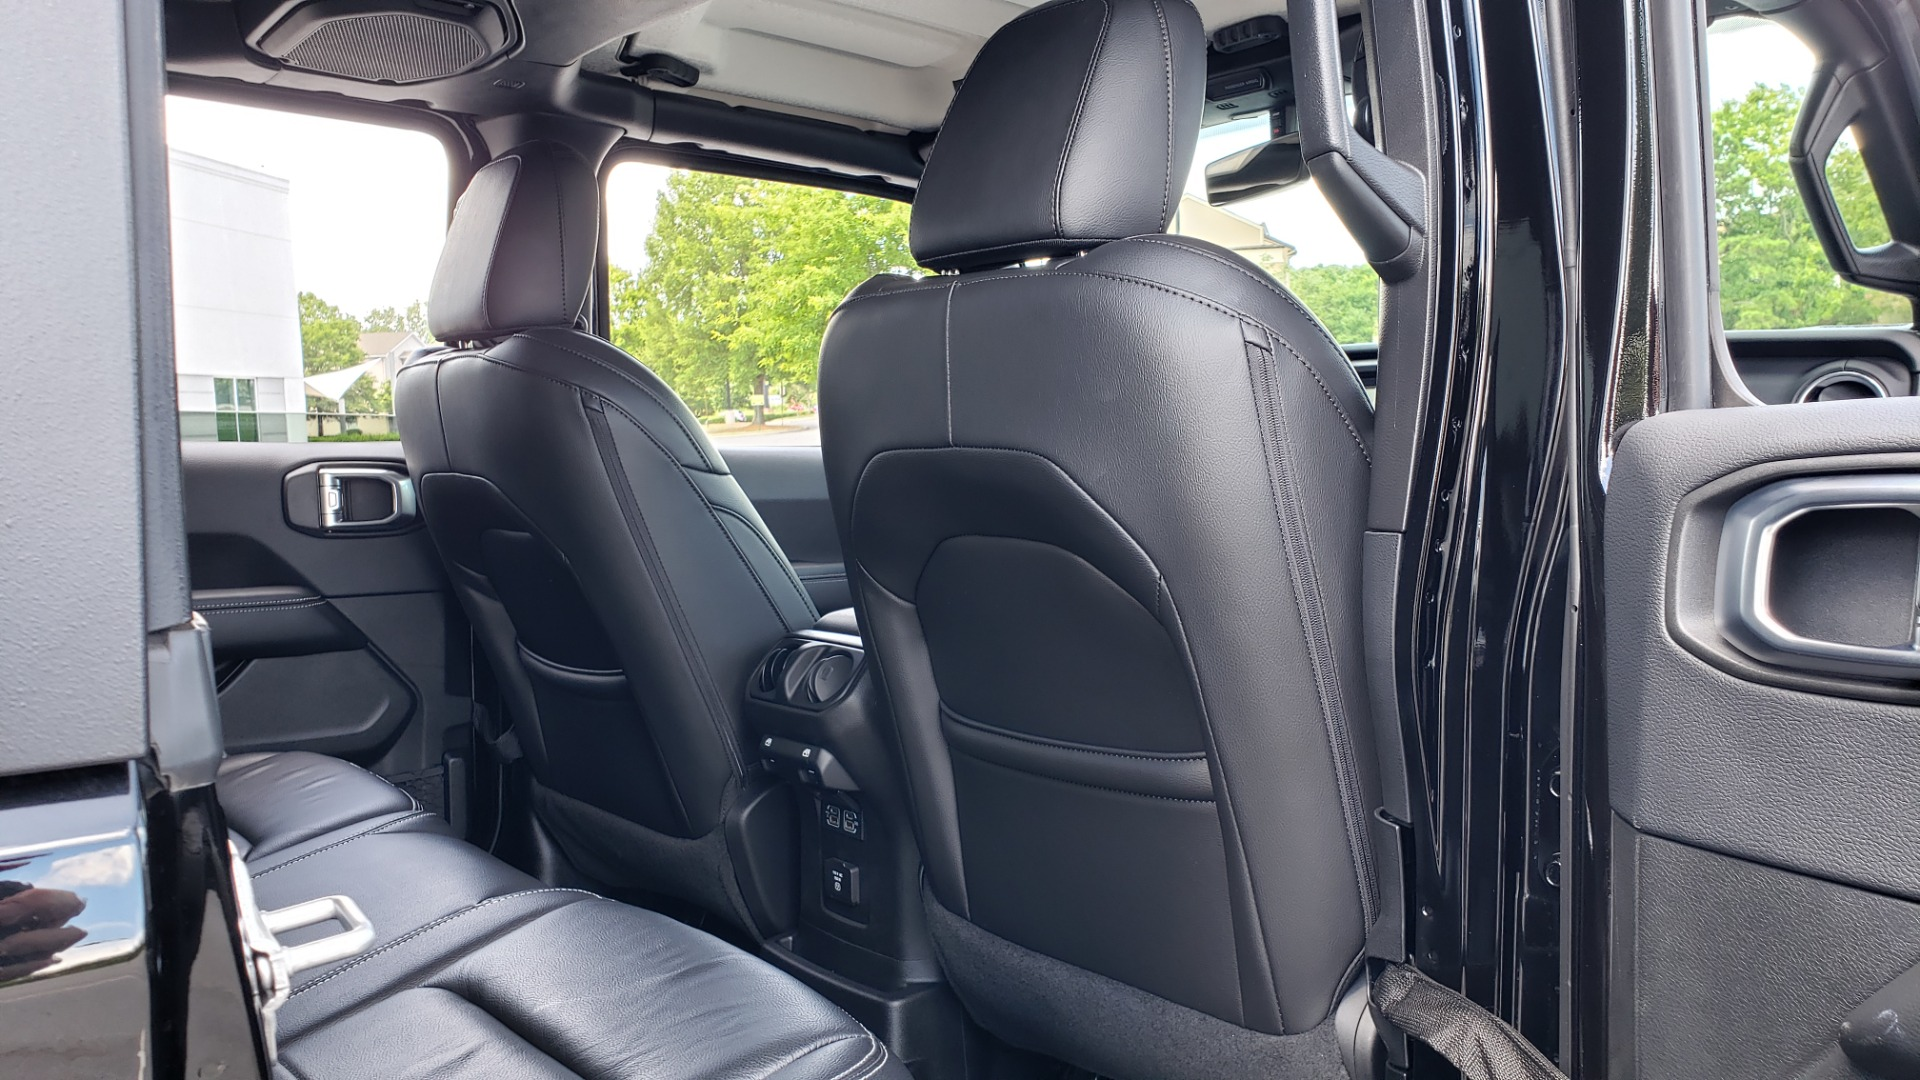 Used 2018 Jeep WRANGLER UNLIMITED SAHARA / 3.6L V6 / 6-SPD MAN / ALPINE / NAV / HTD STS / REARVIEW for sale $43,999 at Formula Imports in Charlotte NC 28227 92